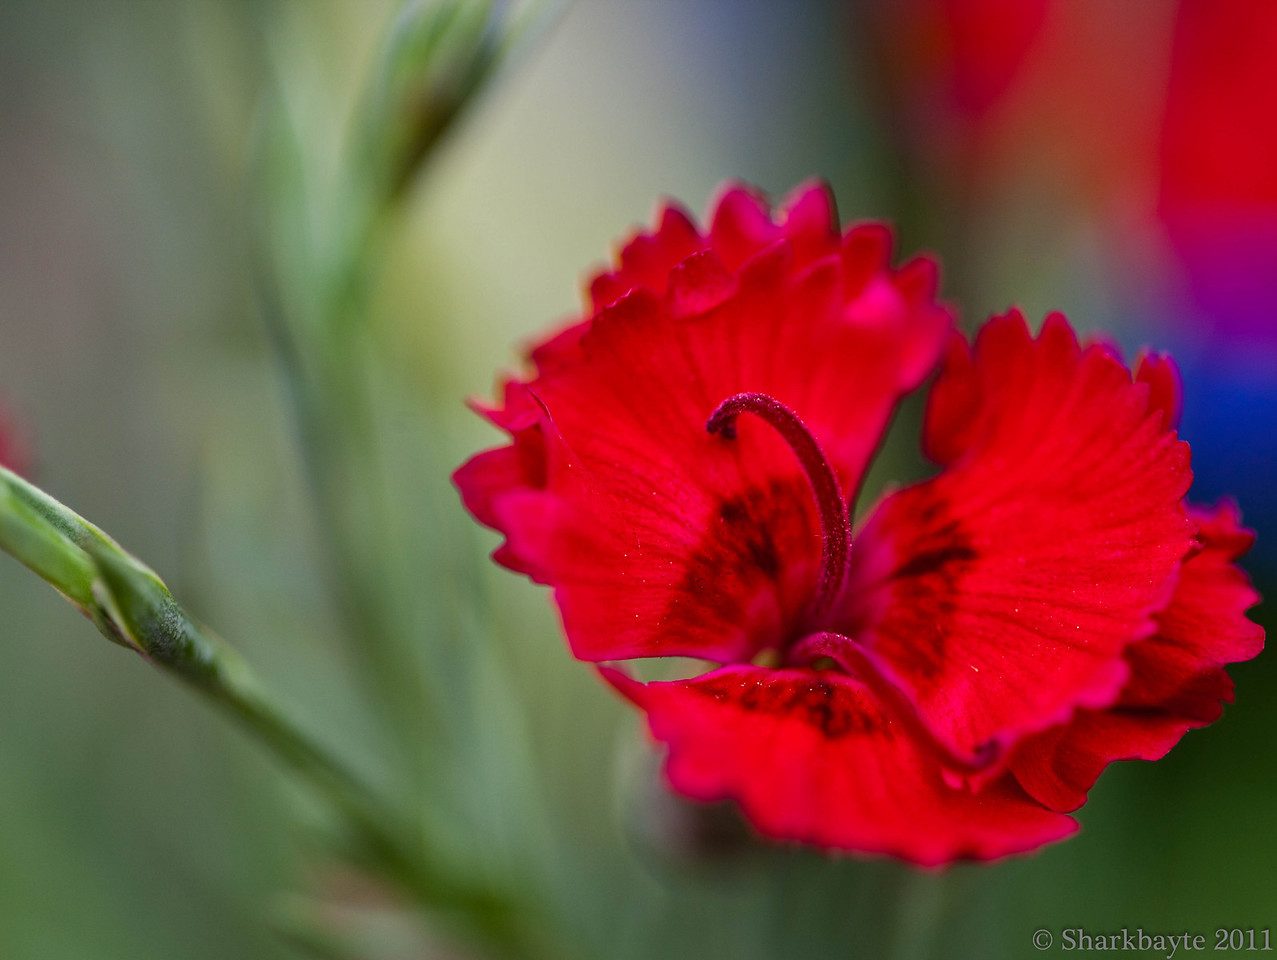 March 22, 2011-Got these Fire Star Dianthus for the yard yesterday. Can't wait to plant them and get the garden started. 81:365 @sharkbayte